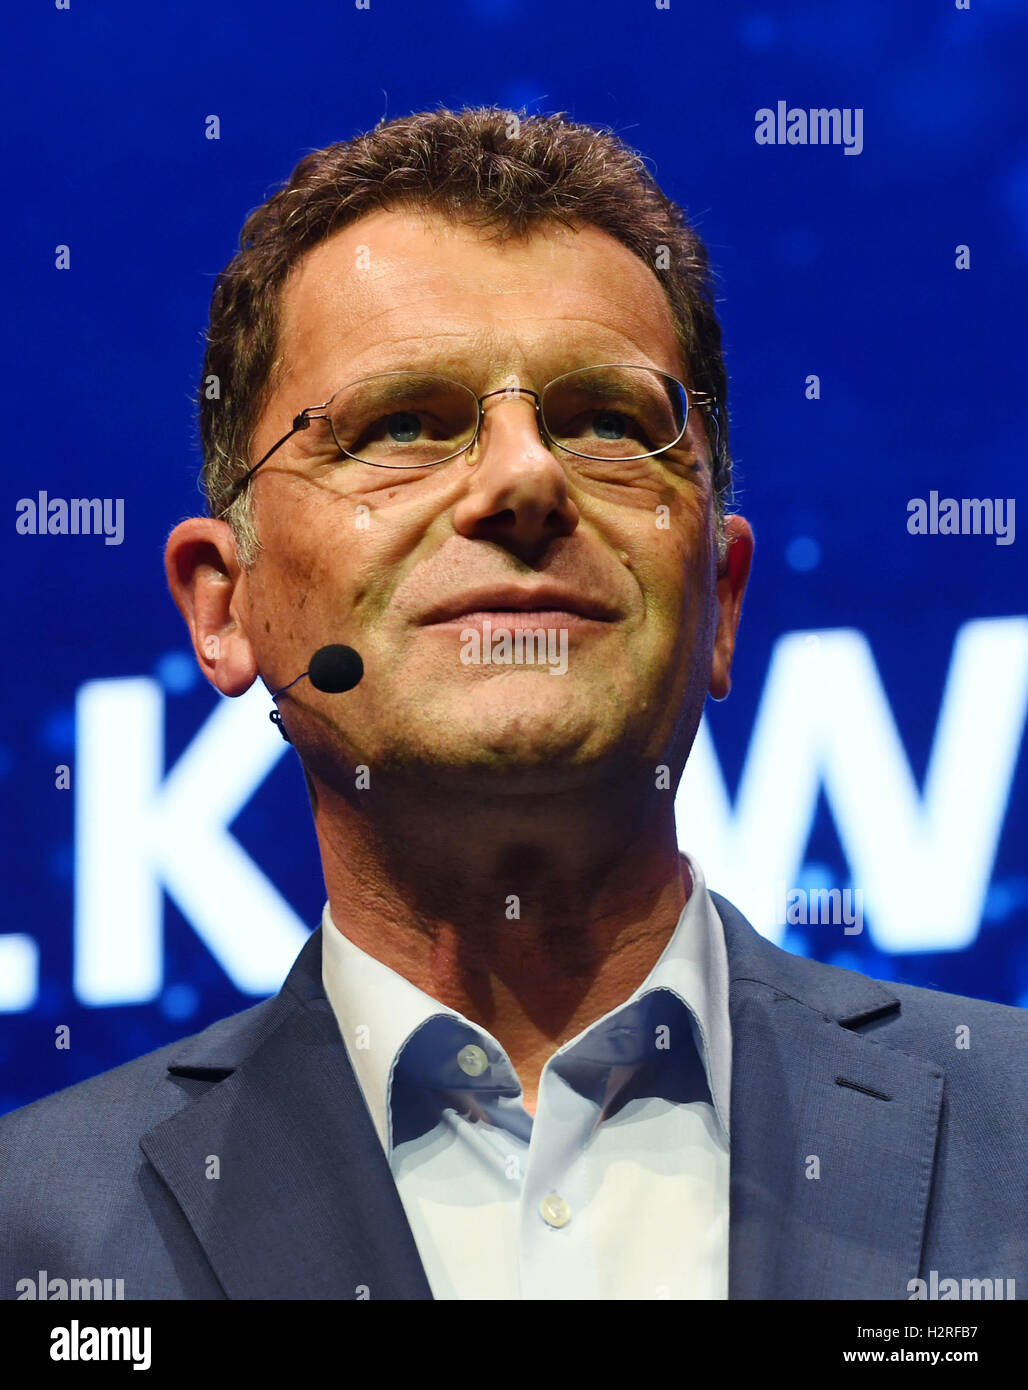 Hans-Gerd Bode, Head of Communications at Volkswagen (VW), at the VW Group Evening in Paris, France, 28 September - Stock Image